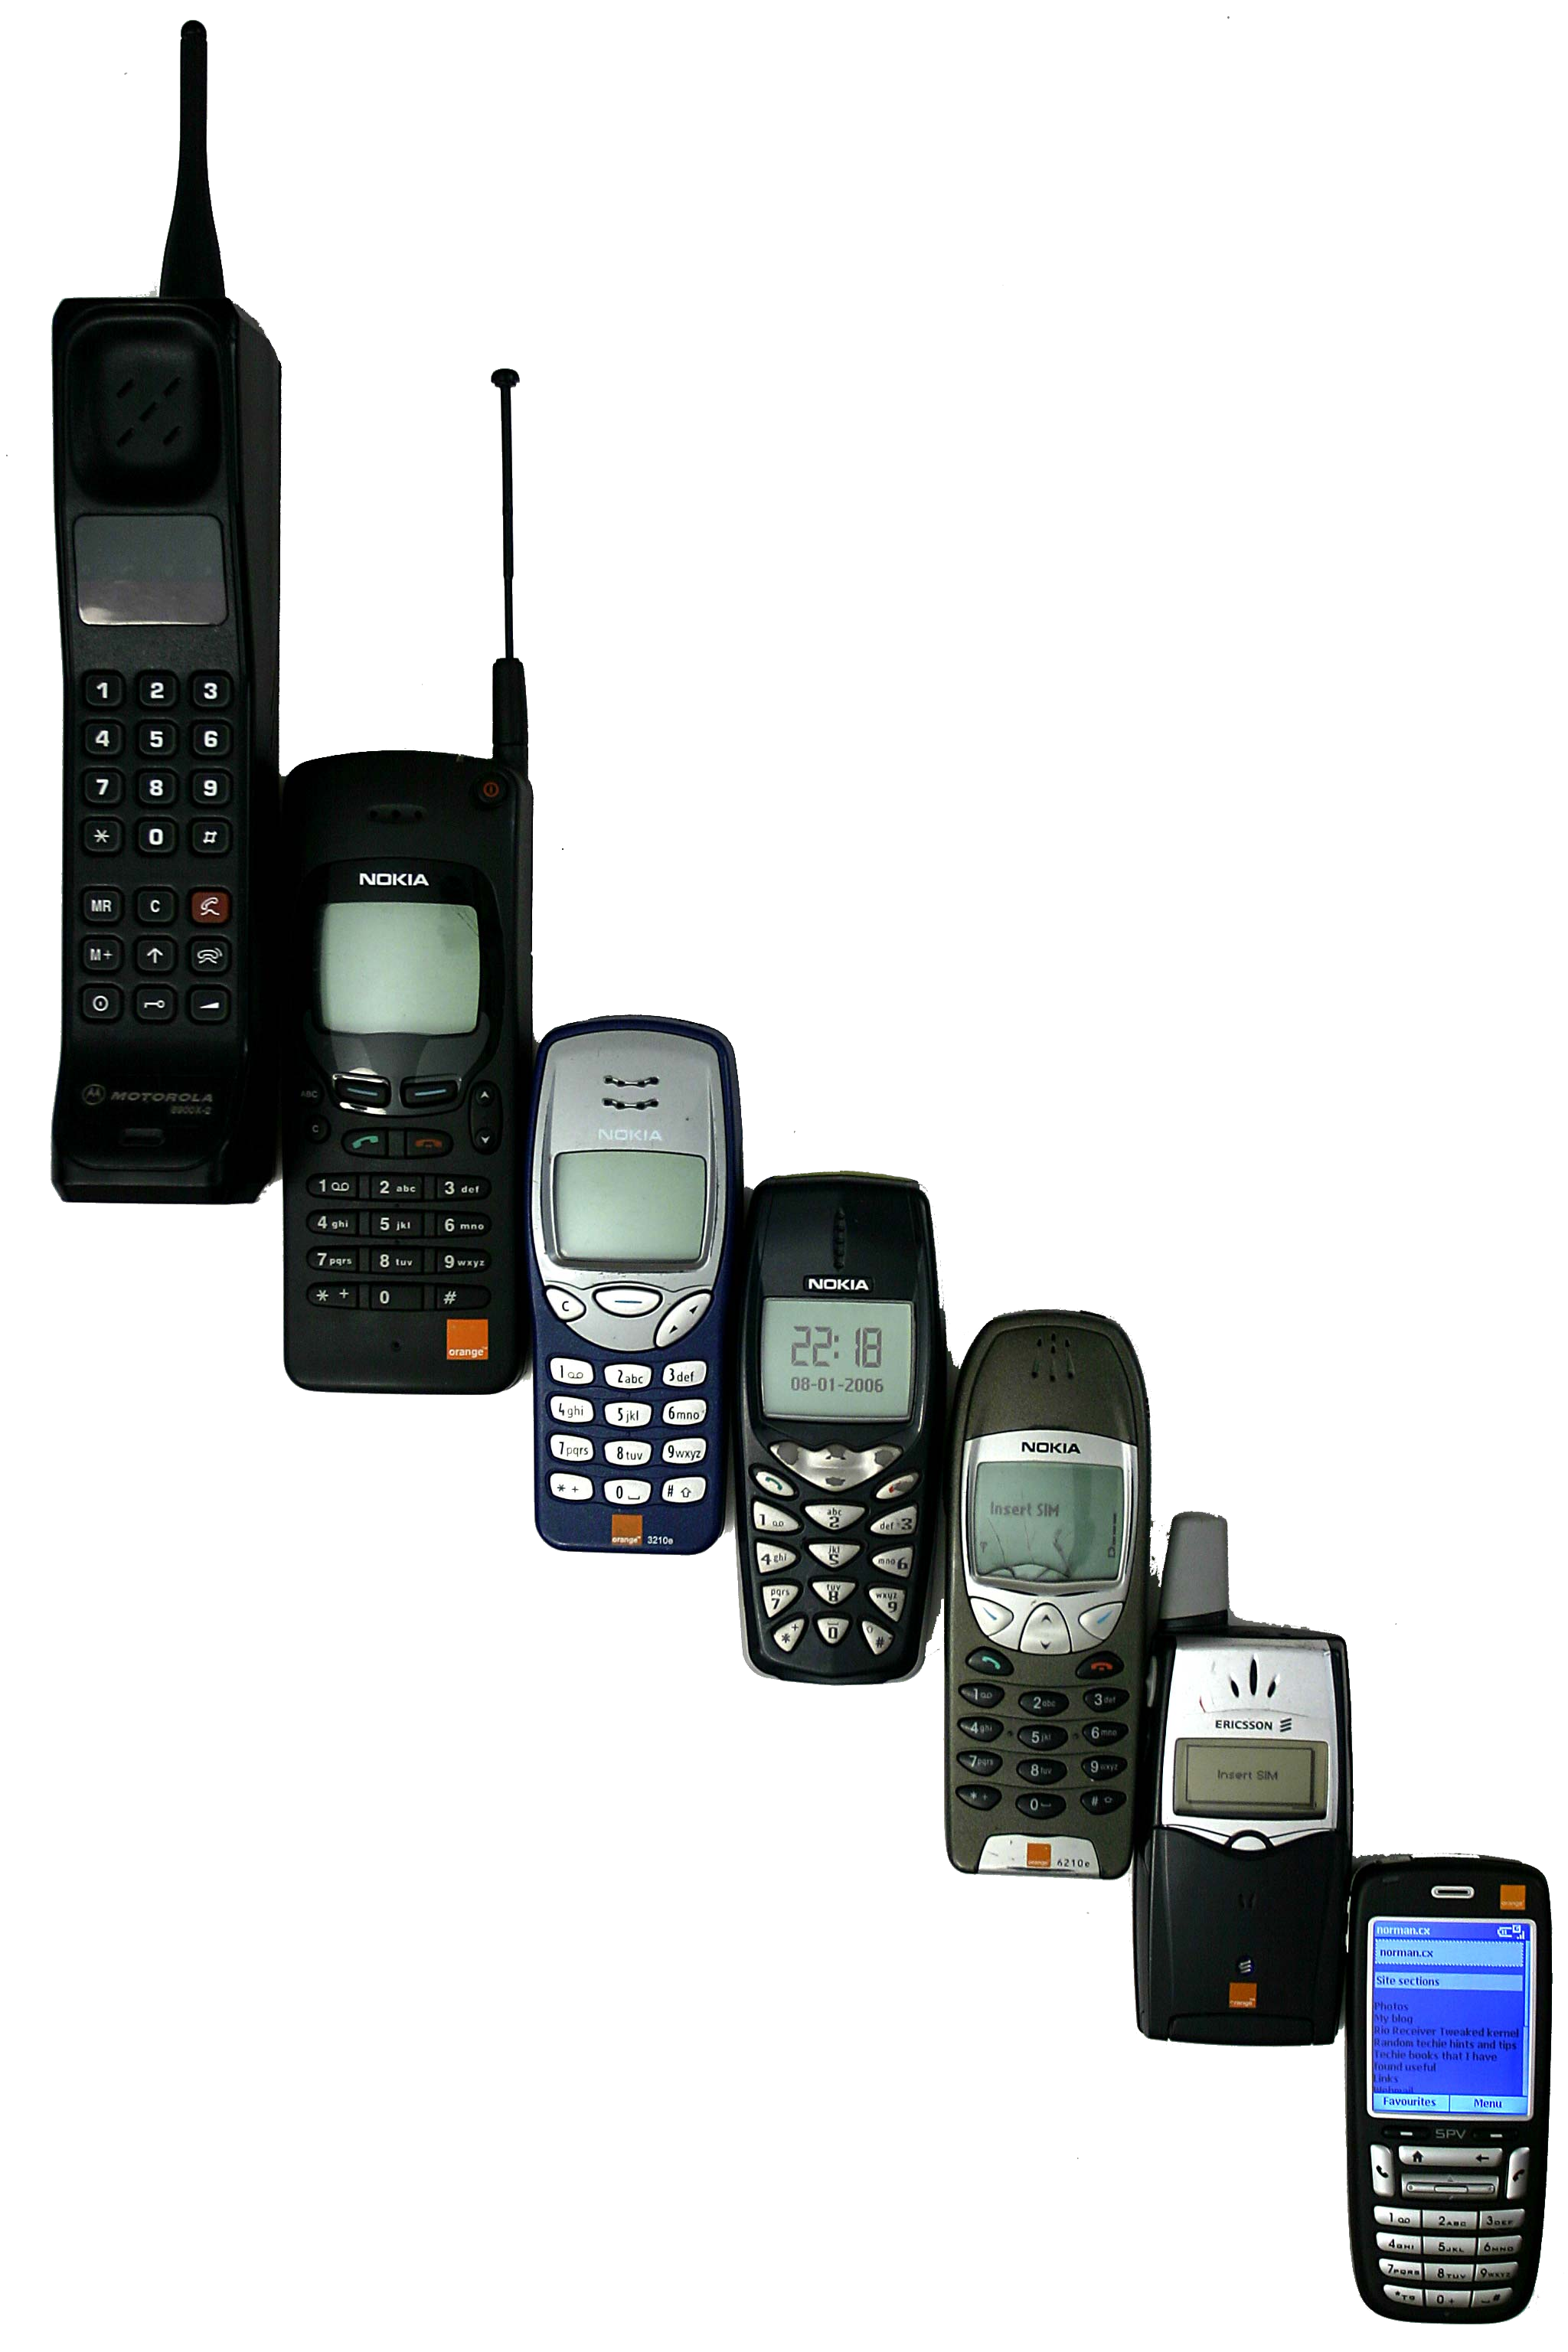 Mobile phone evolution png. Telephone clipart telephone headset